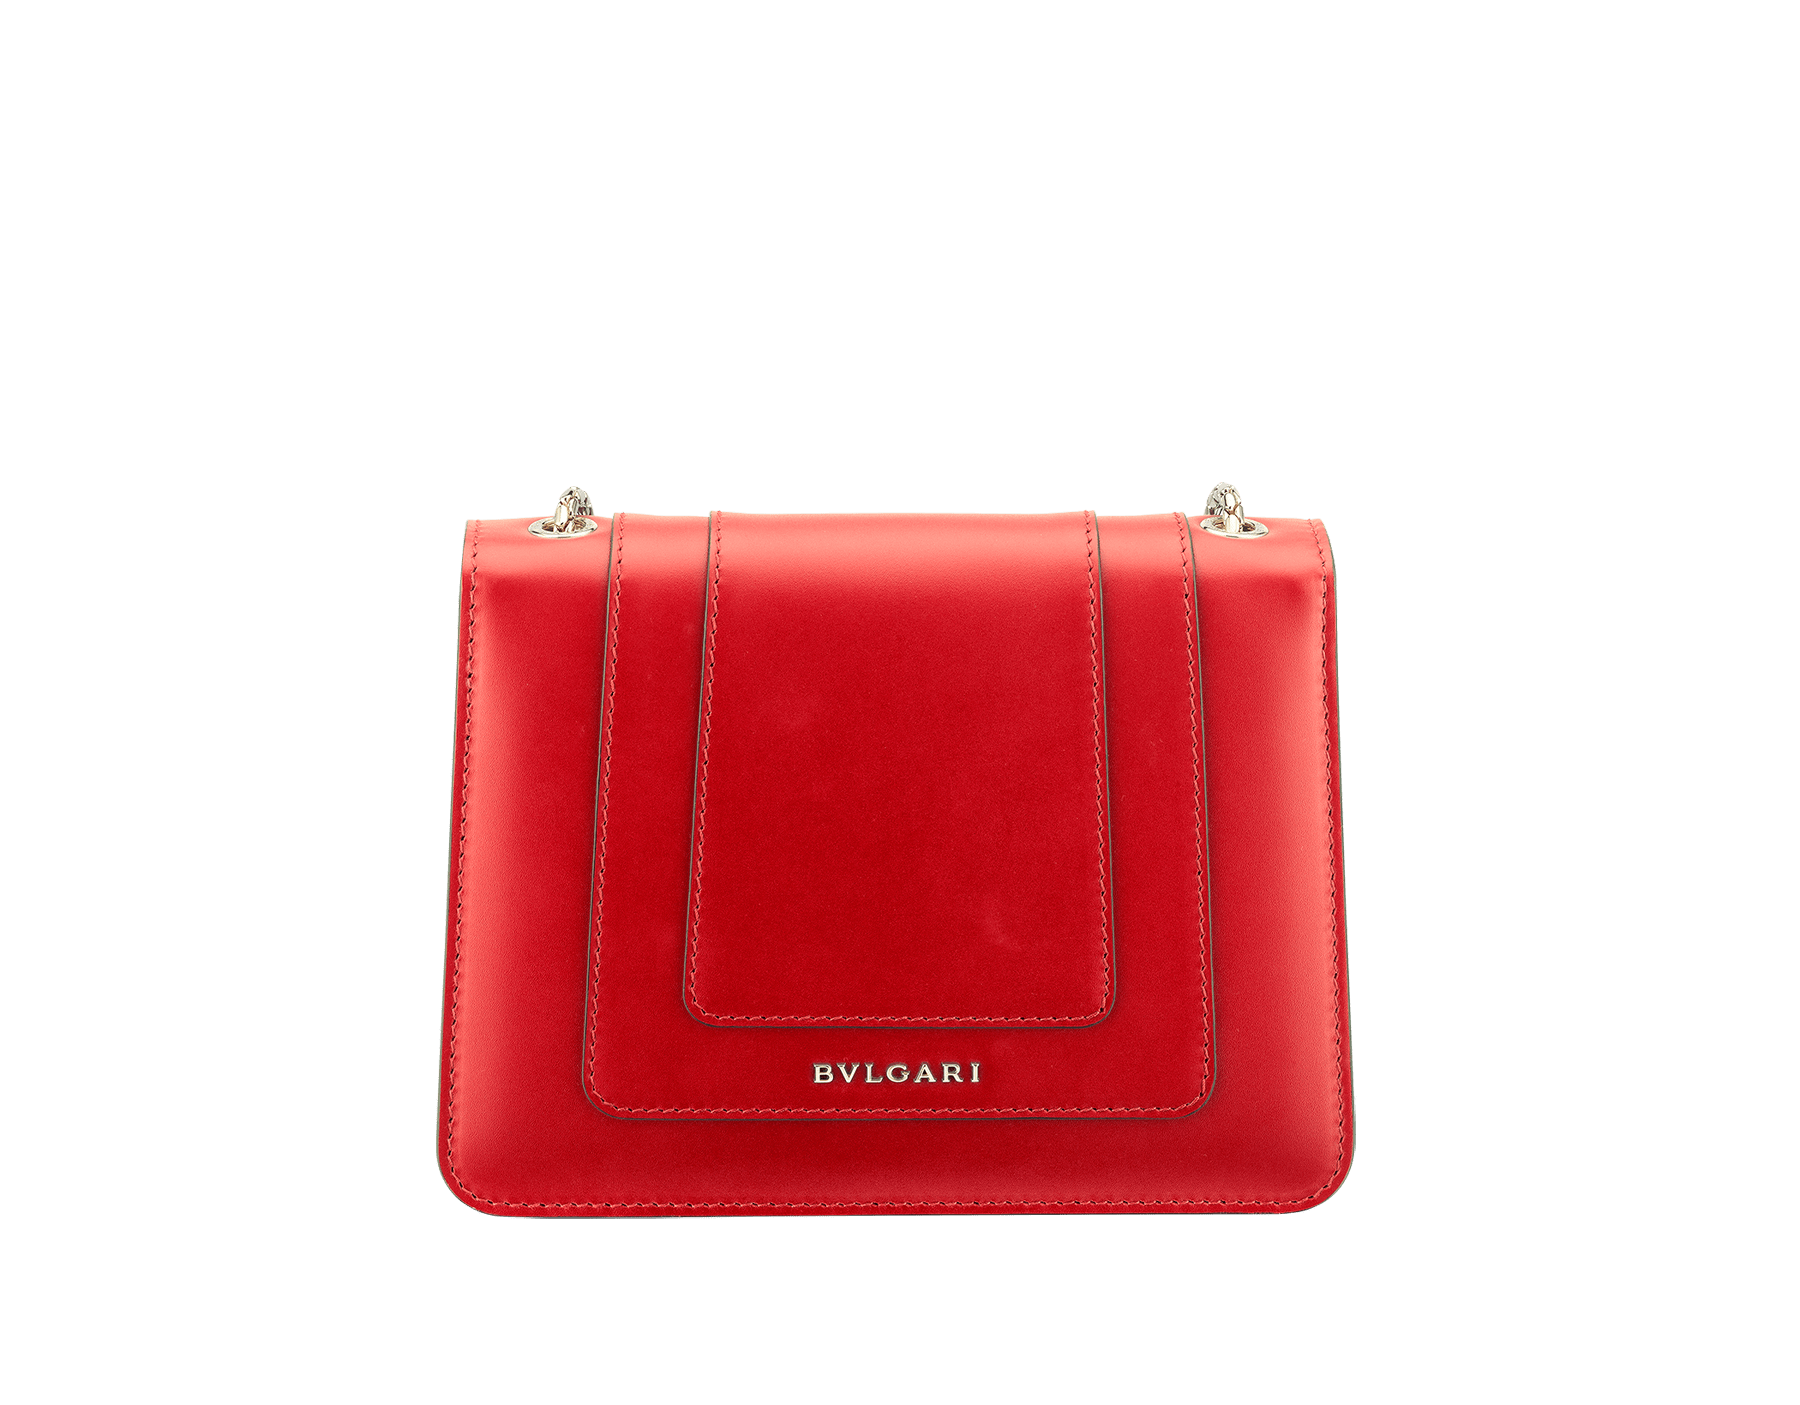 """Serpenti Forever "" crossbody bag in carmine jasper calf leather. Iconic snakehead closure in light gold plated brass enriched with black and white enamel and green malachite eyes 287013 image 3"